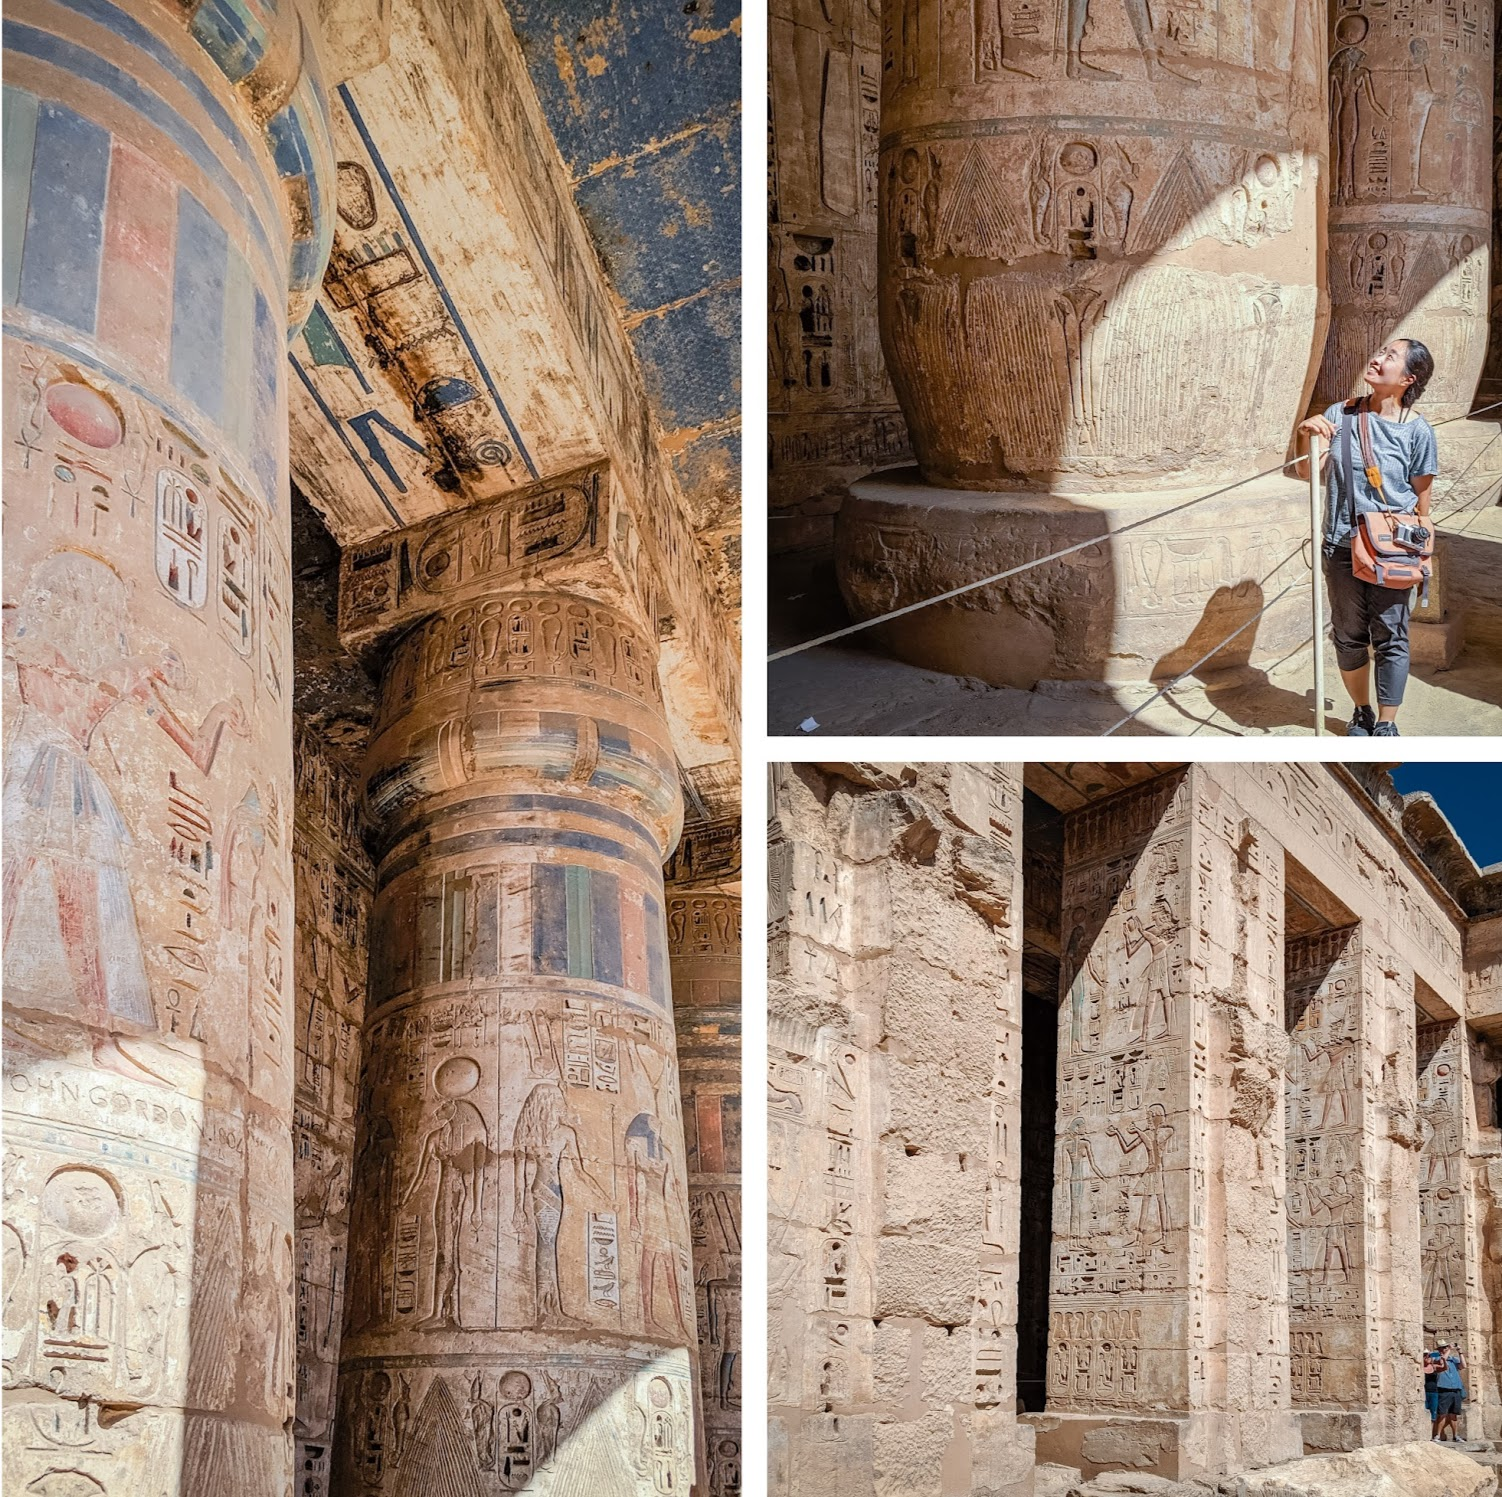 The carvings of Medinat Habu temple